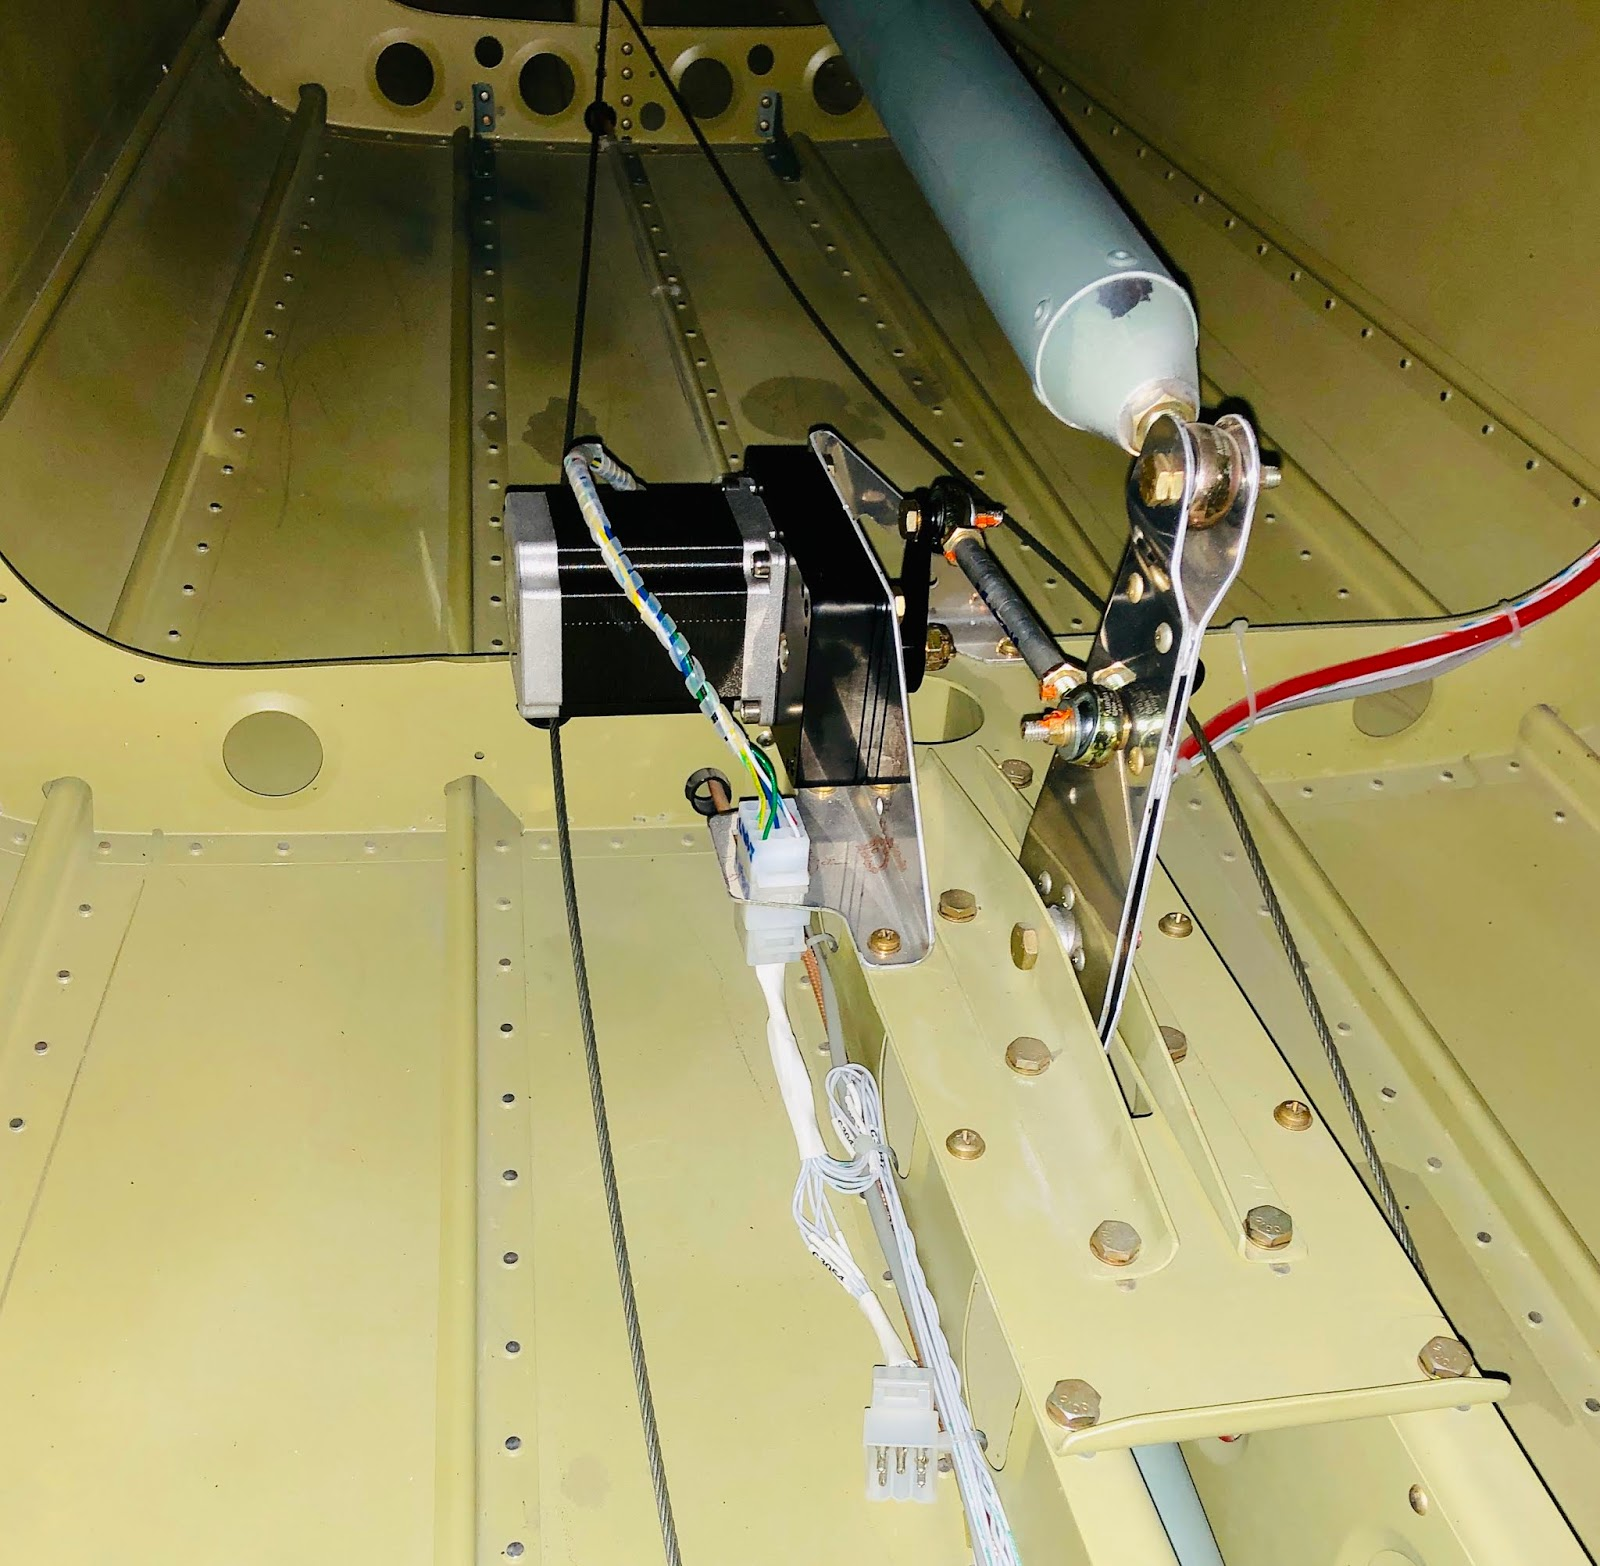 medium resolution of from there i continued laying the fuselage wire harness and wiring for the control sticks again it takes an enormous amount of time to get these things